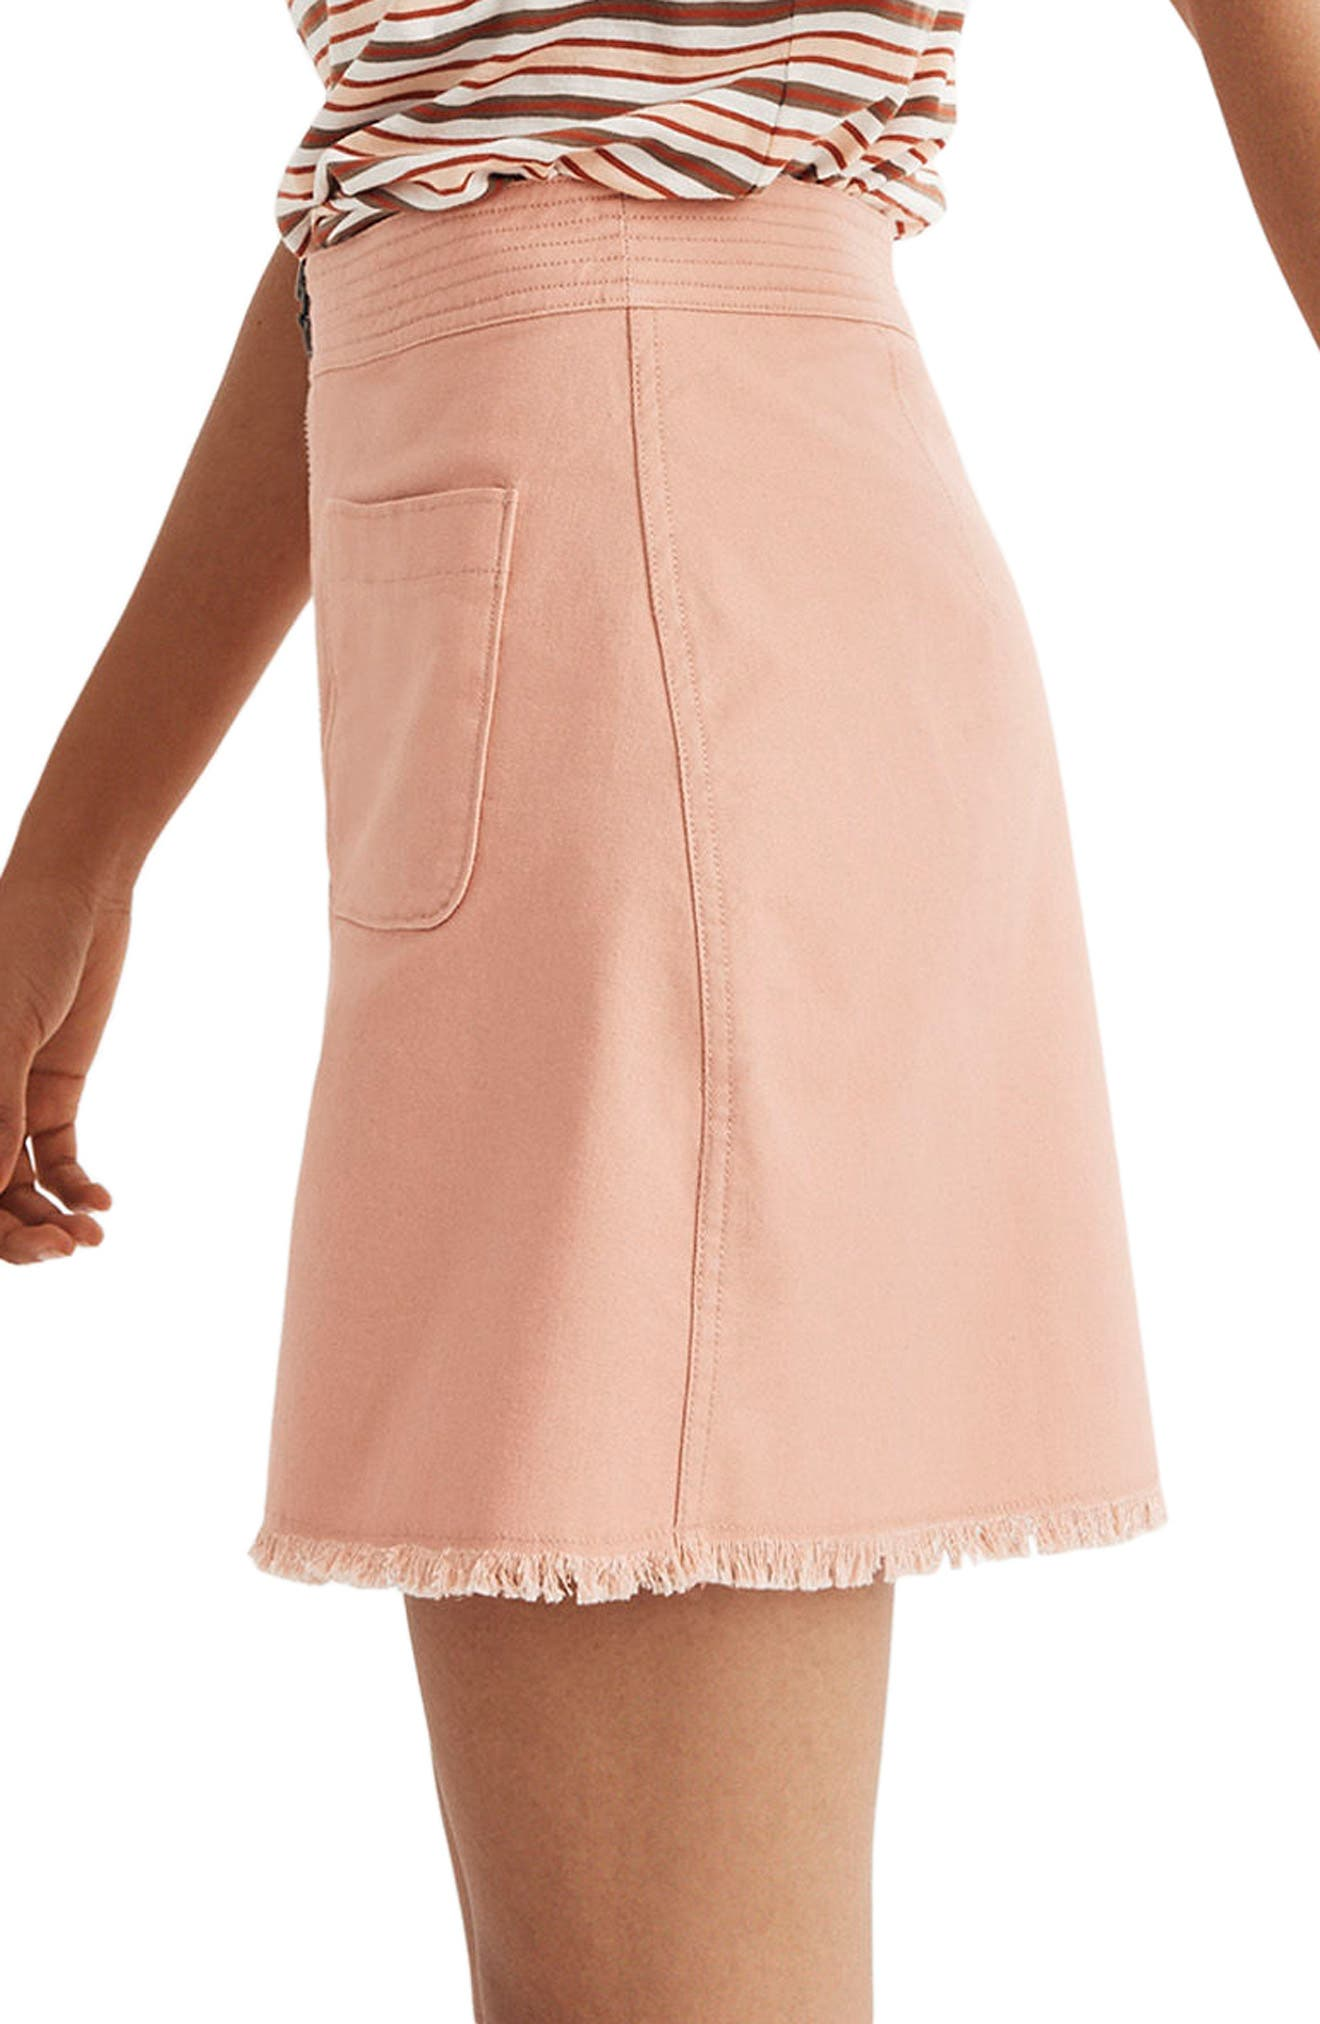 A-Line Zip Skirt,                             Alternate thumbnail 3, color,                             651